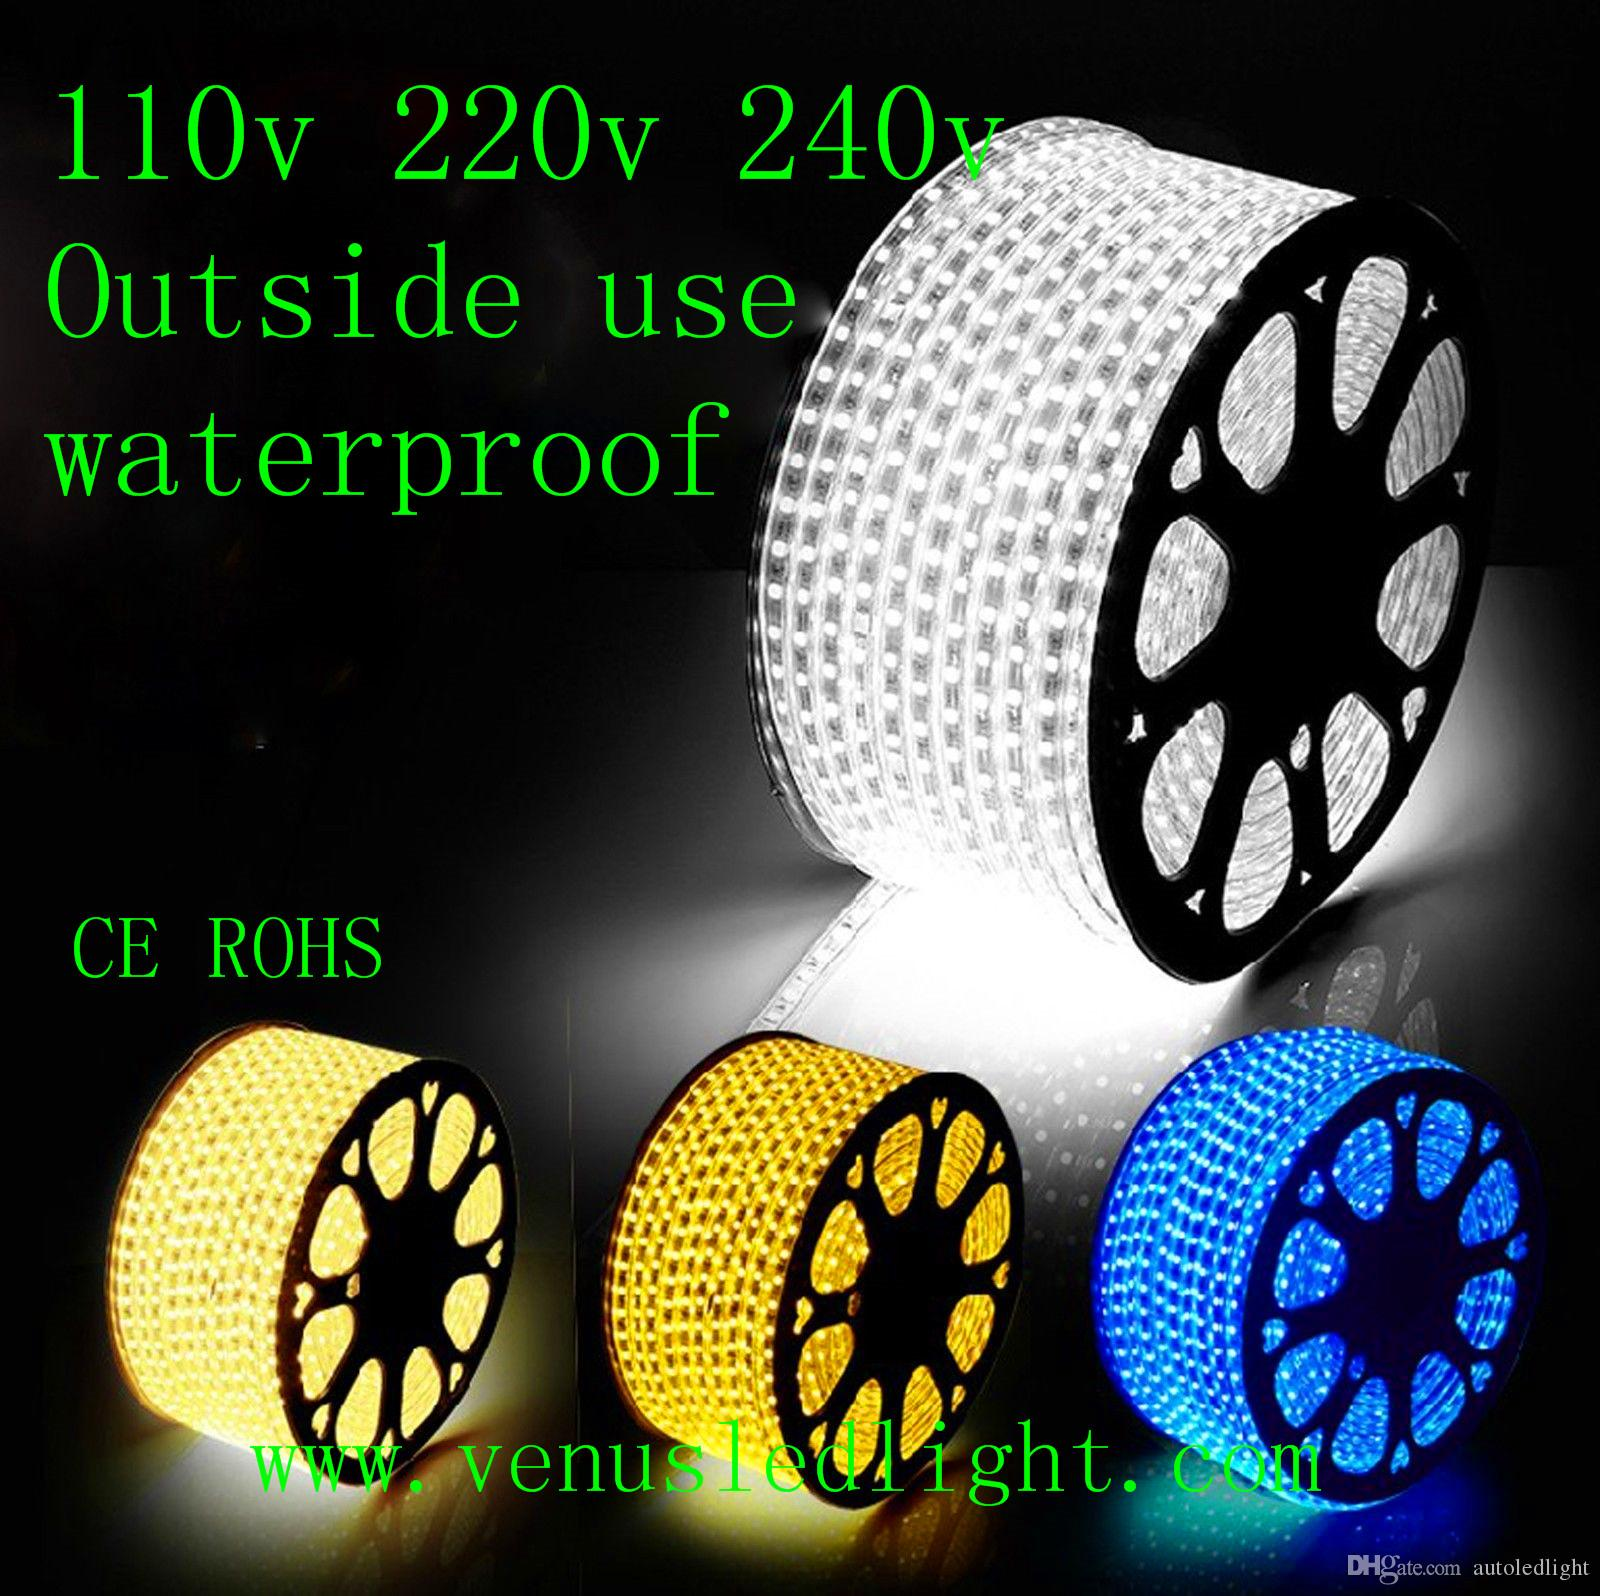 100m led strip light 60led flexible 110v220v waterproof smd 3528 100m led strip light 60led flexible 110v220v waterproof smd 3528 5050 chiristmas led rope light outdoor led light xmas decorating car led light strips dmx aloadofball